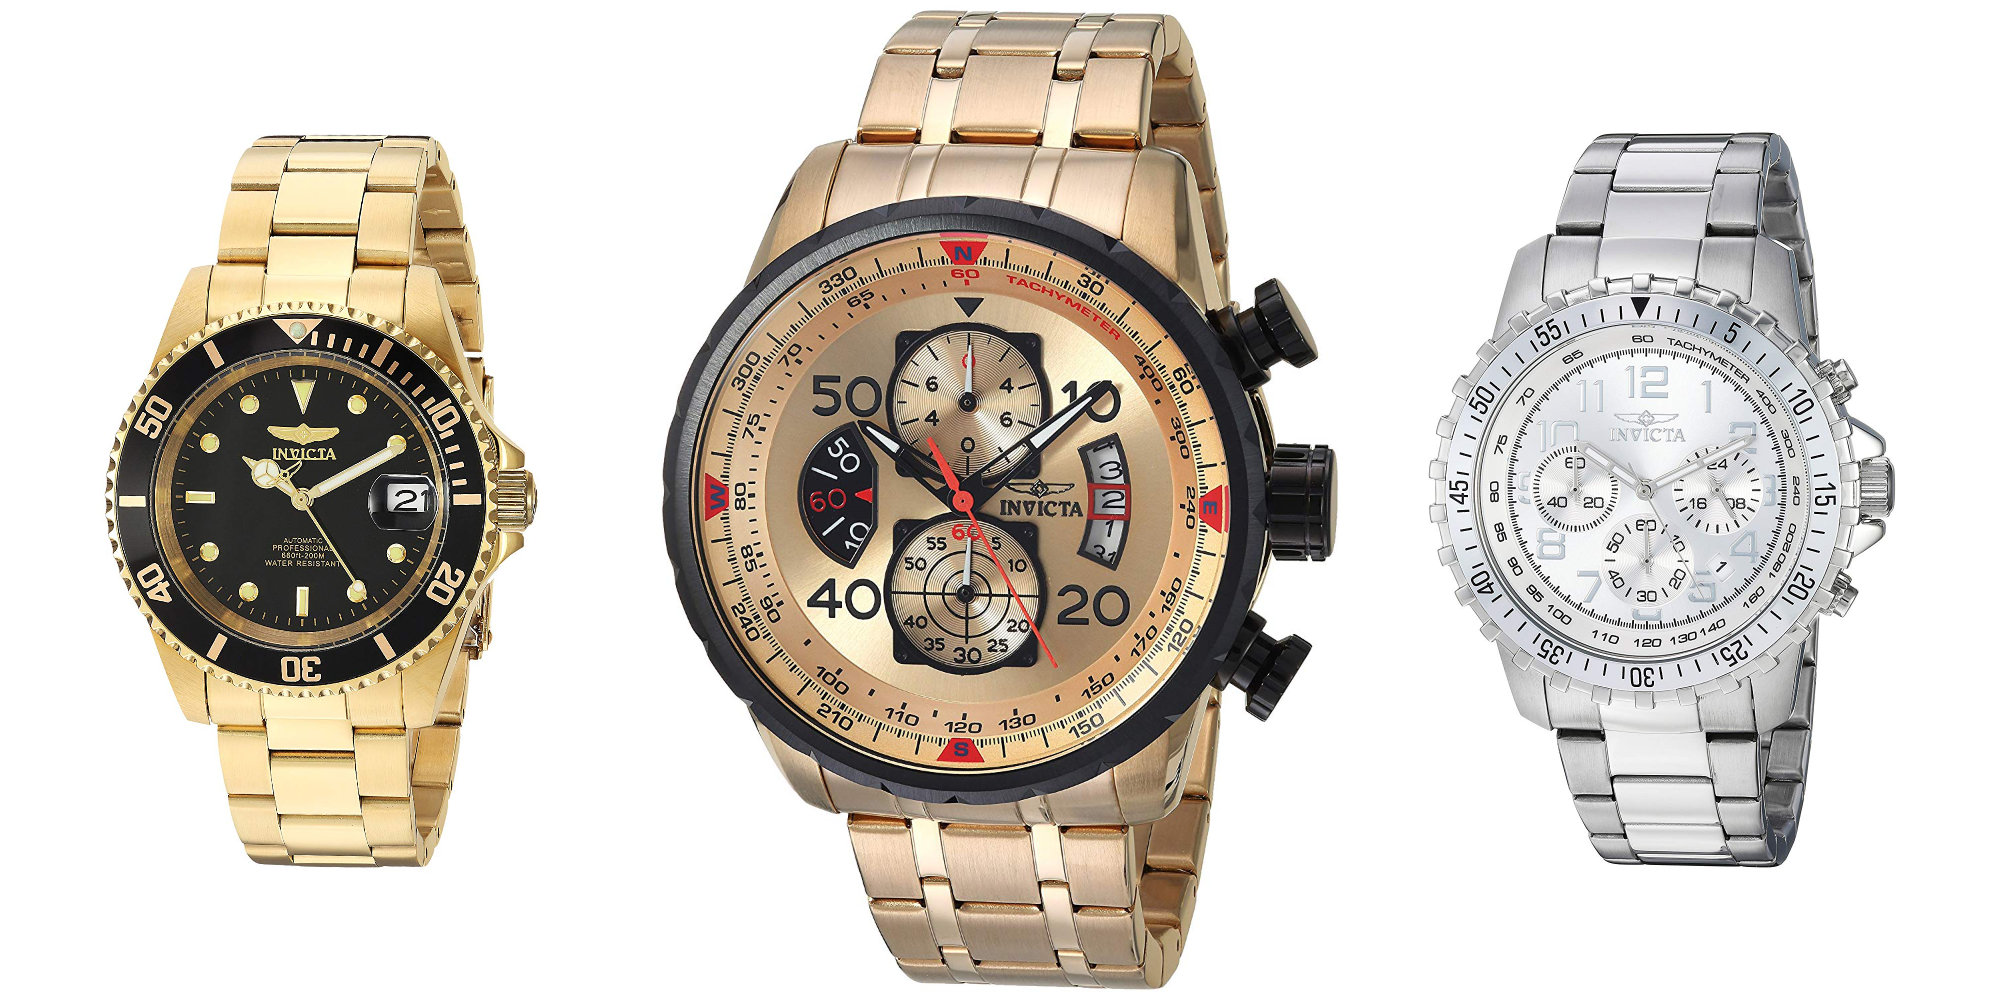 Shake up your look w/ Invicta's Aviator Gold Watch for $62 (Reg. $90), more from $49.50